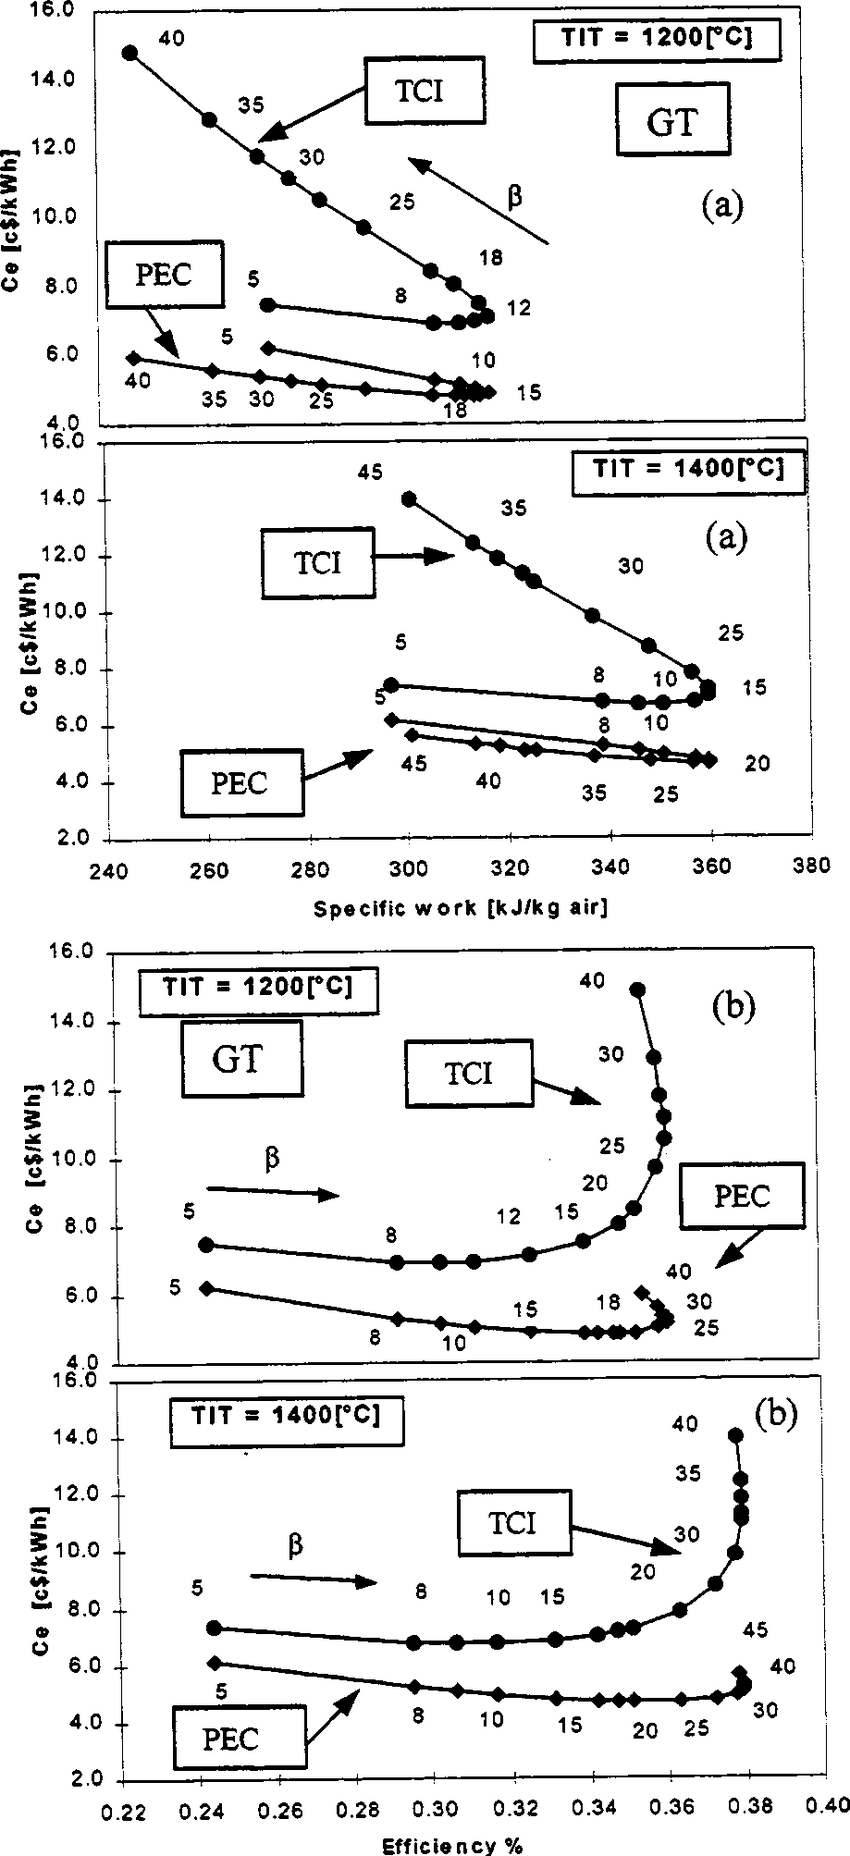 hight resolution of simple cycle gas turbine cost versus specific work a and cost versus efficiency